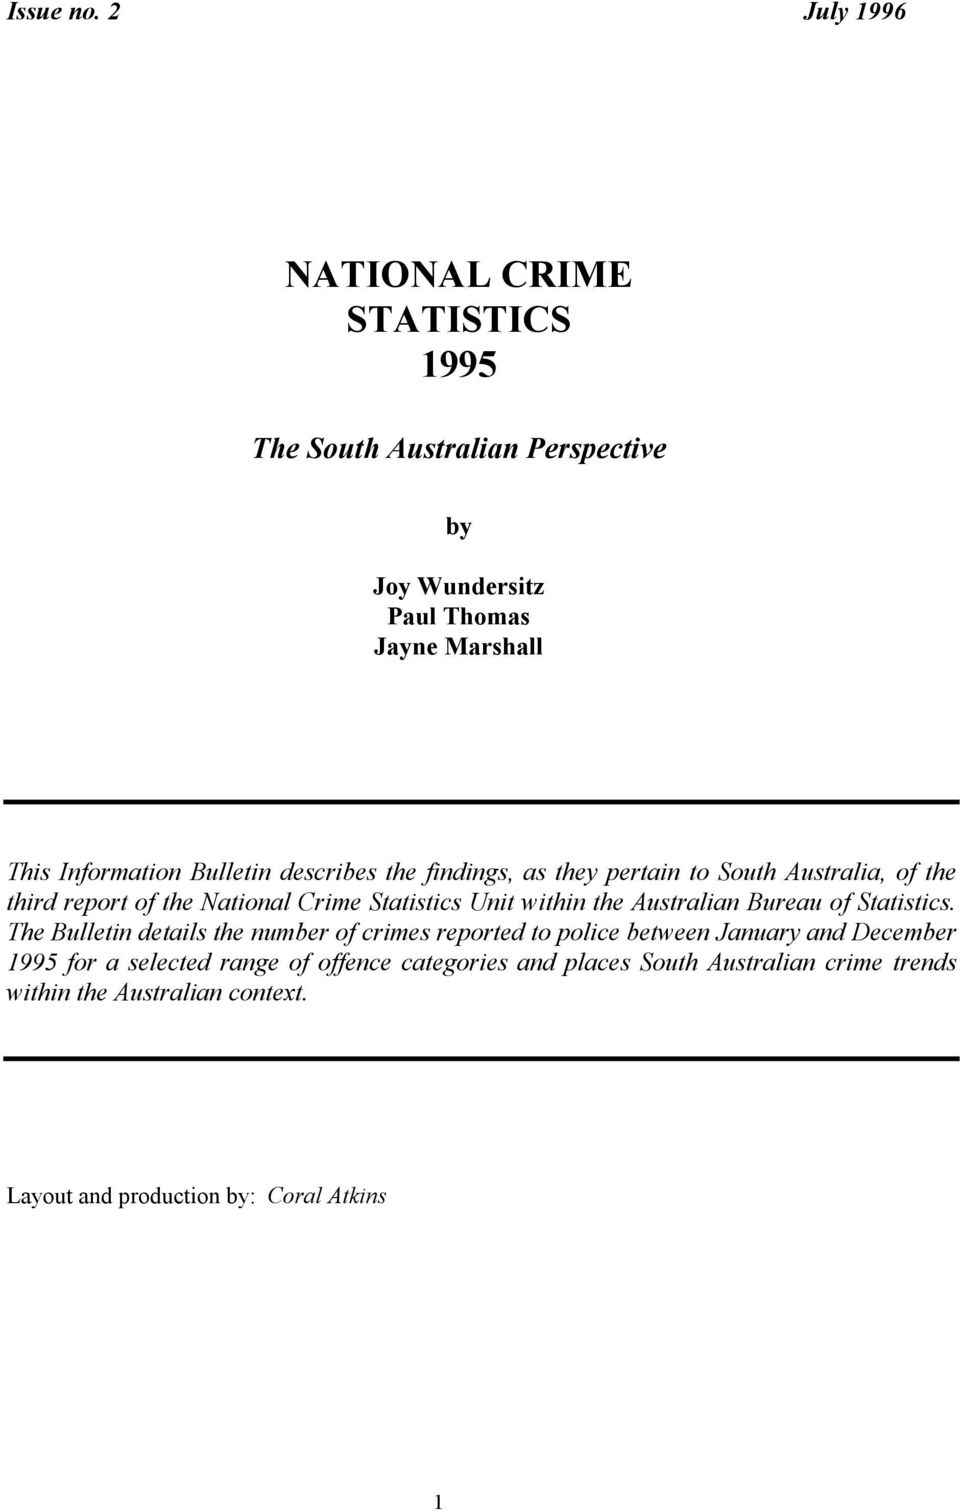 Bulletin describes the findings, as they pertain to South Australia, of the third report of the National Crime Statistics Unit within the